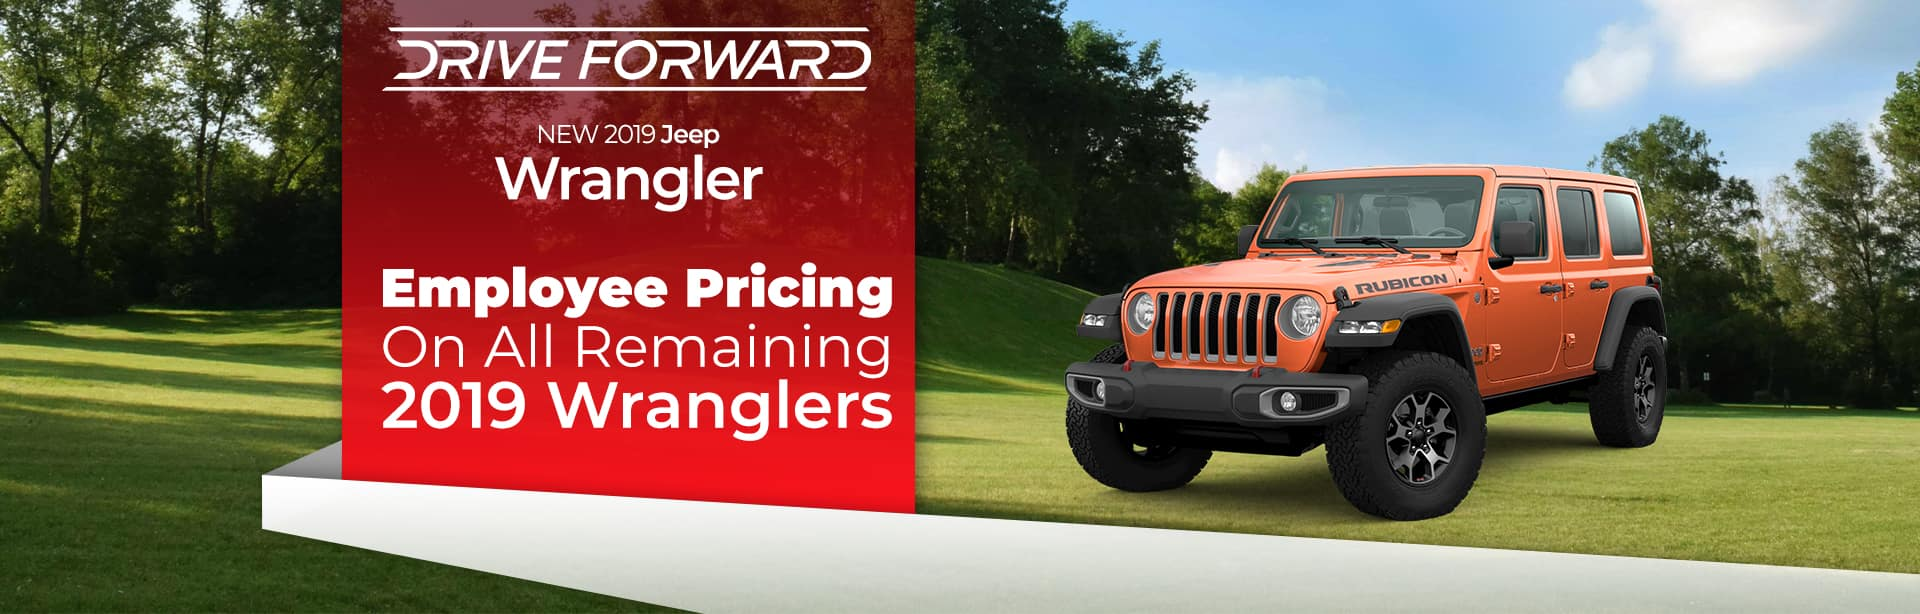 Friends and Family Pricing on 2019 Jeep Wranglers